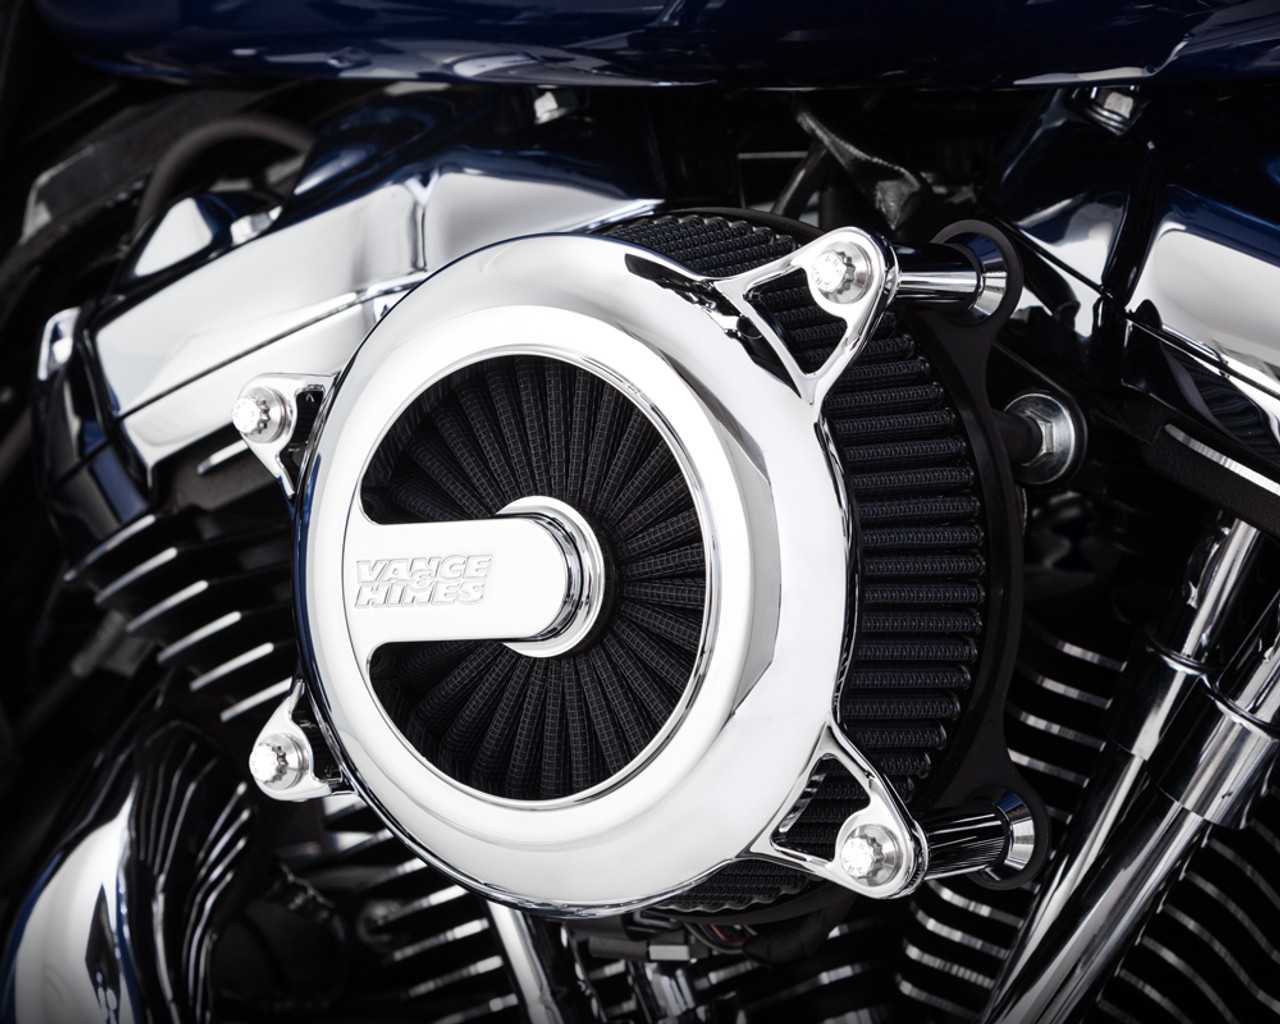 Vance & Hines VO2 Rogue Air Intake for '18-Up Softail Models - Chrome